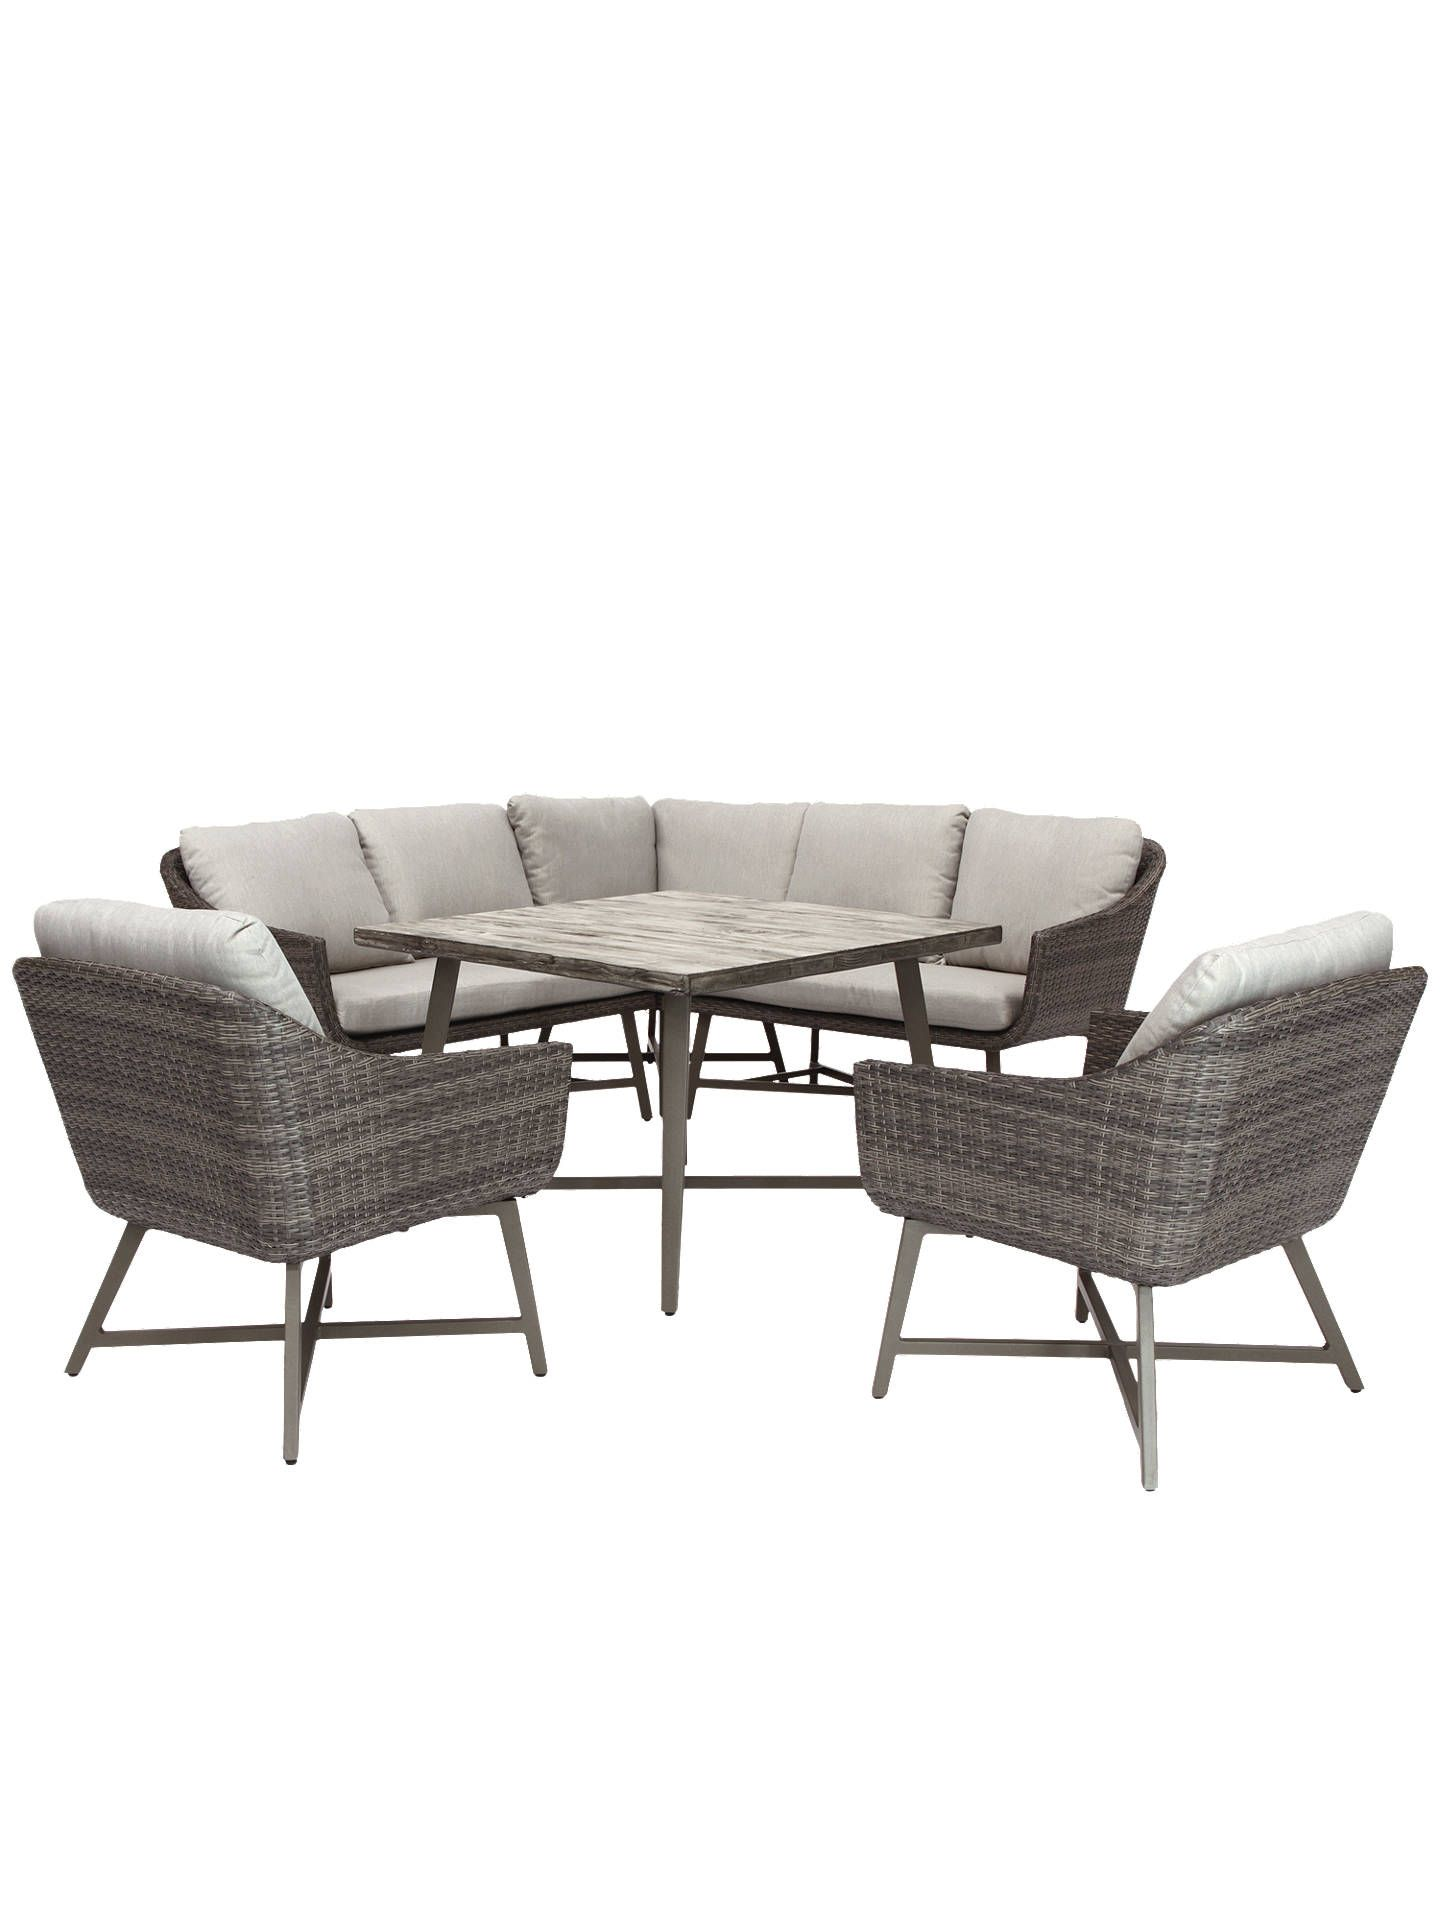 94144a1d4172 KETTLER LaMode Garden Lounging Corner Table and Chairs Set, Grey at John  Lewis & Partners